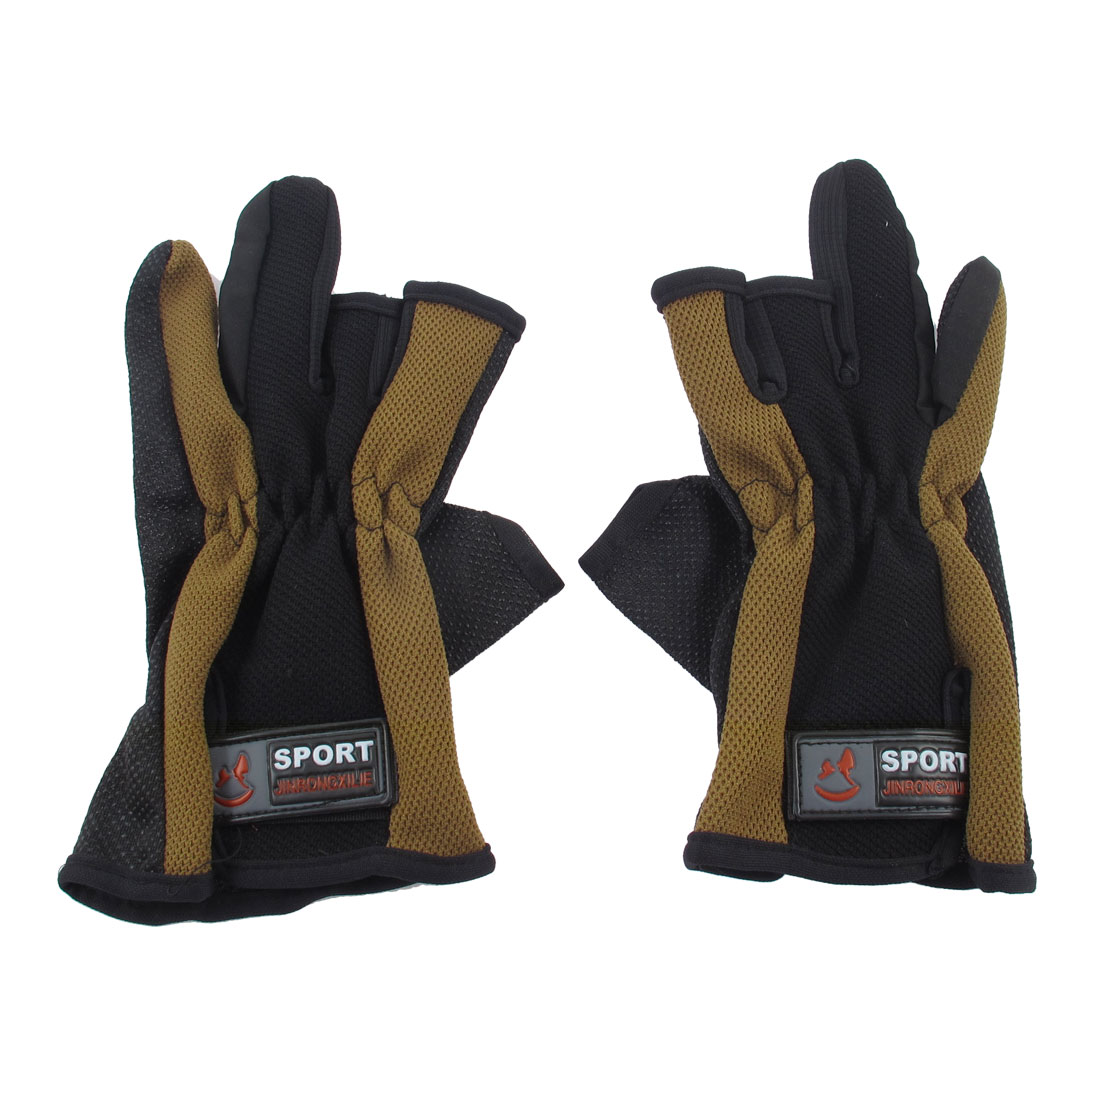 Pair Dotted Antislip Palm 3 Cut Fingers Fishing Shooting Hunting Gloves Brown